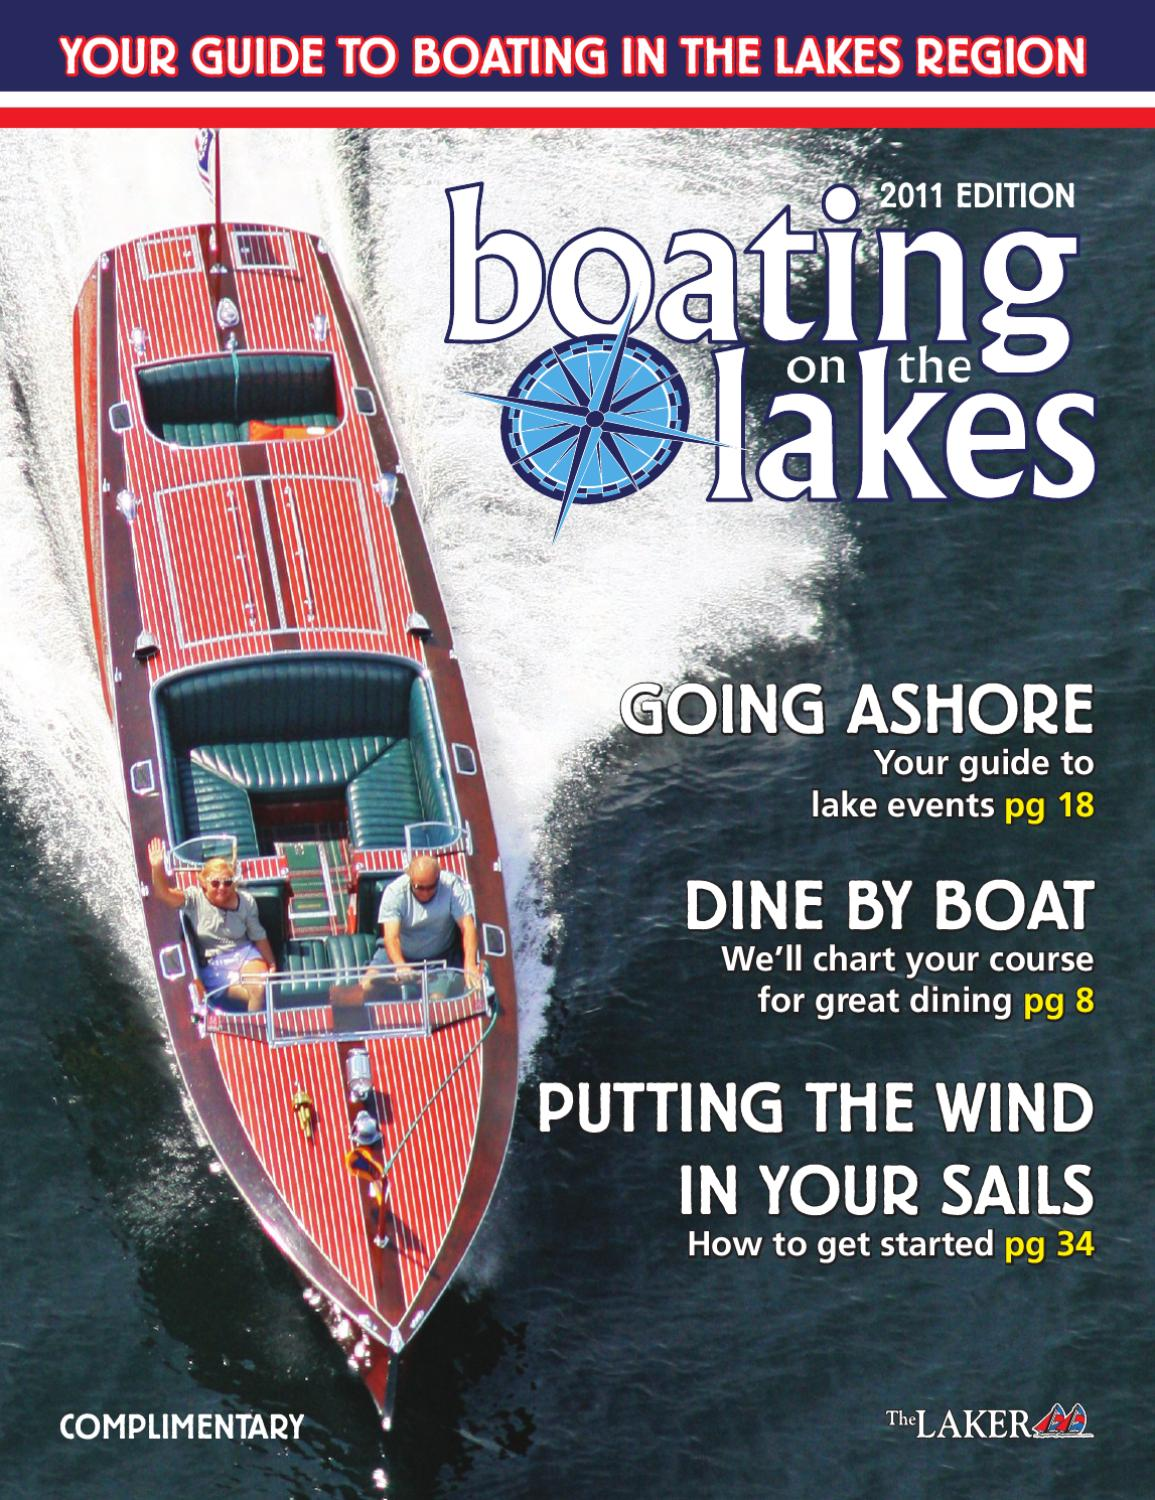 Boating on the Lakes 2011 by The Laker - issuu